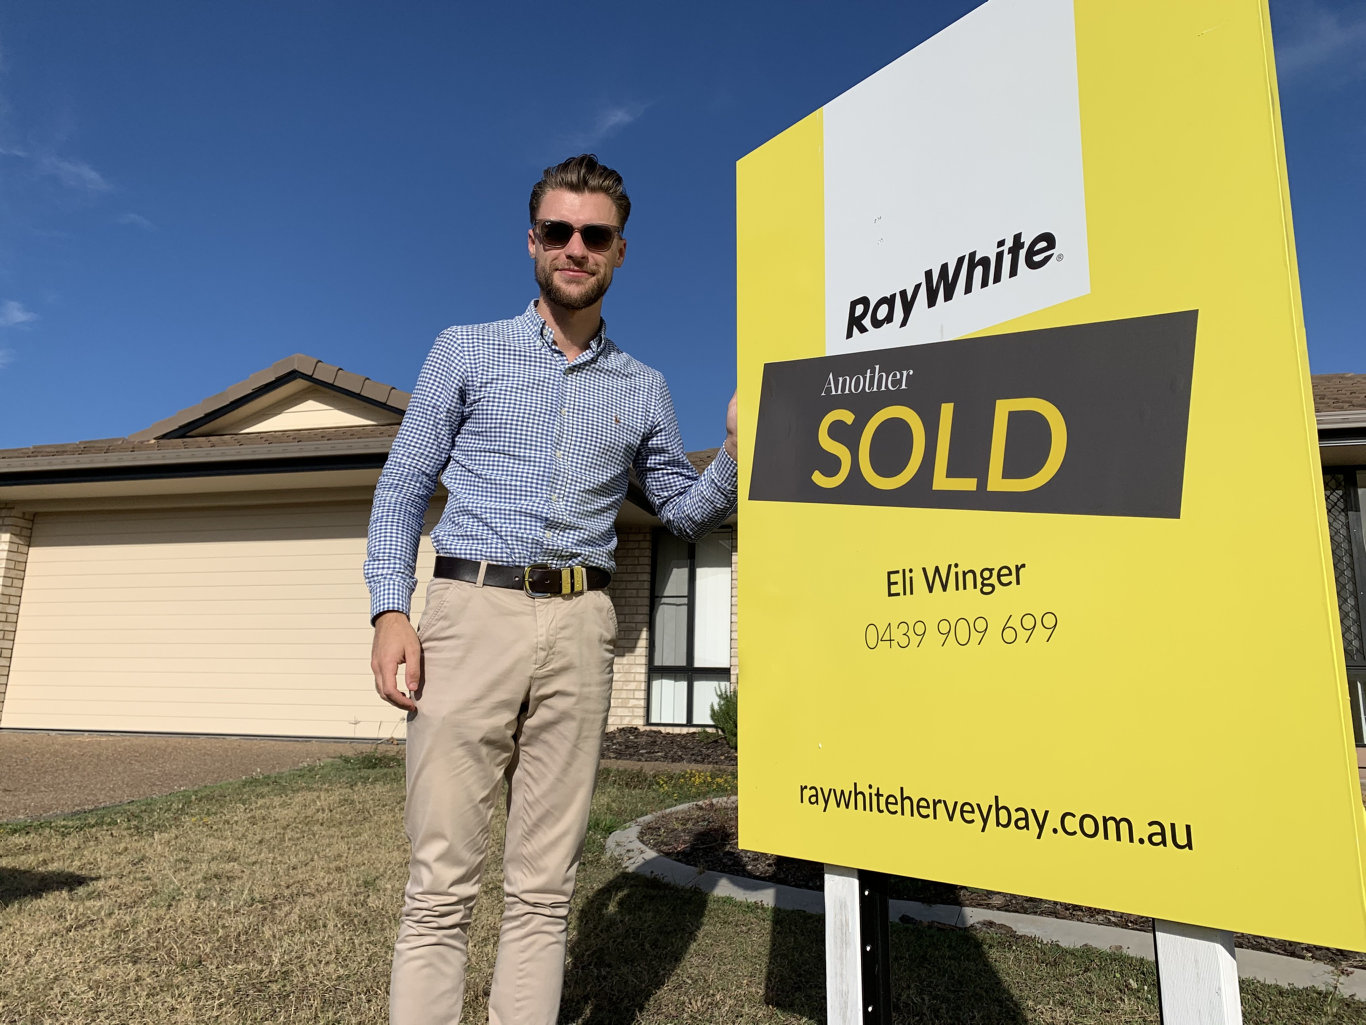 Ray White Hervey Bay sales and marketing consultant Eli Winger outside the home he sold in just two days. PHOTO: Contributed.